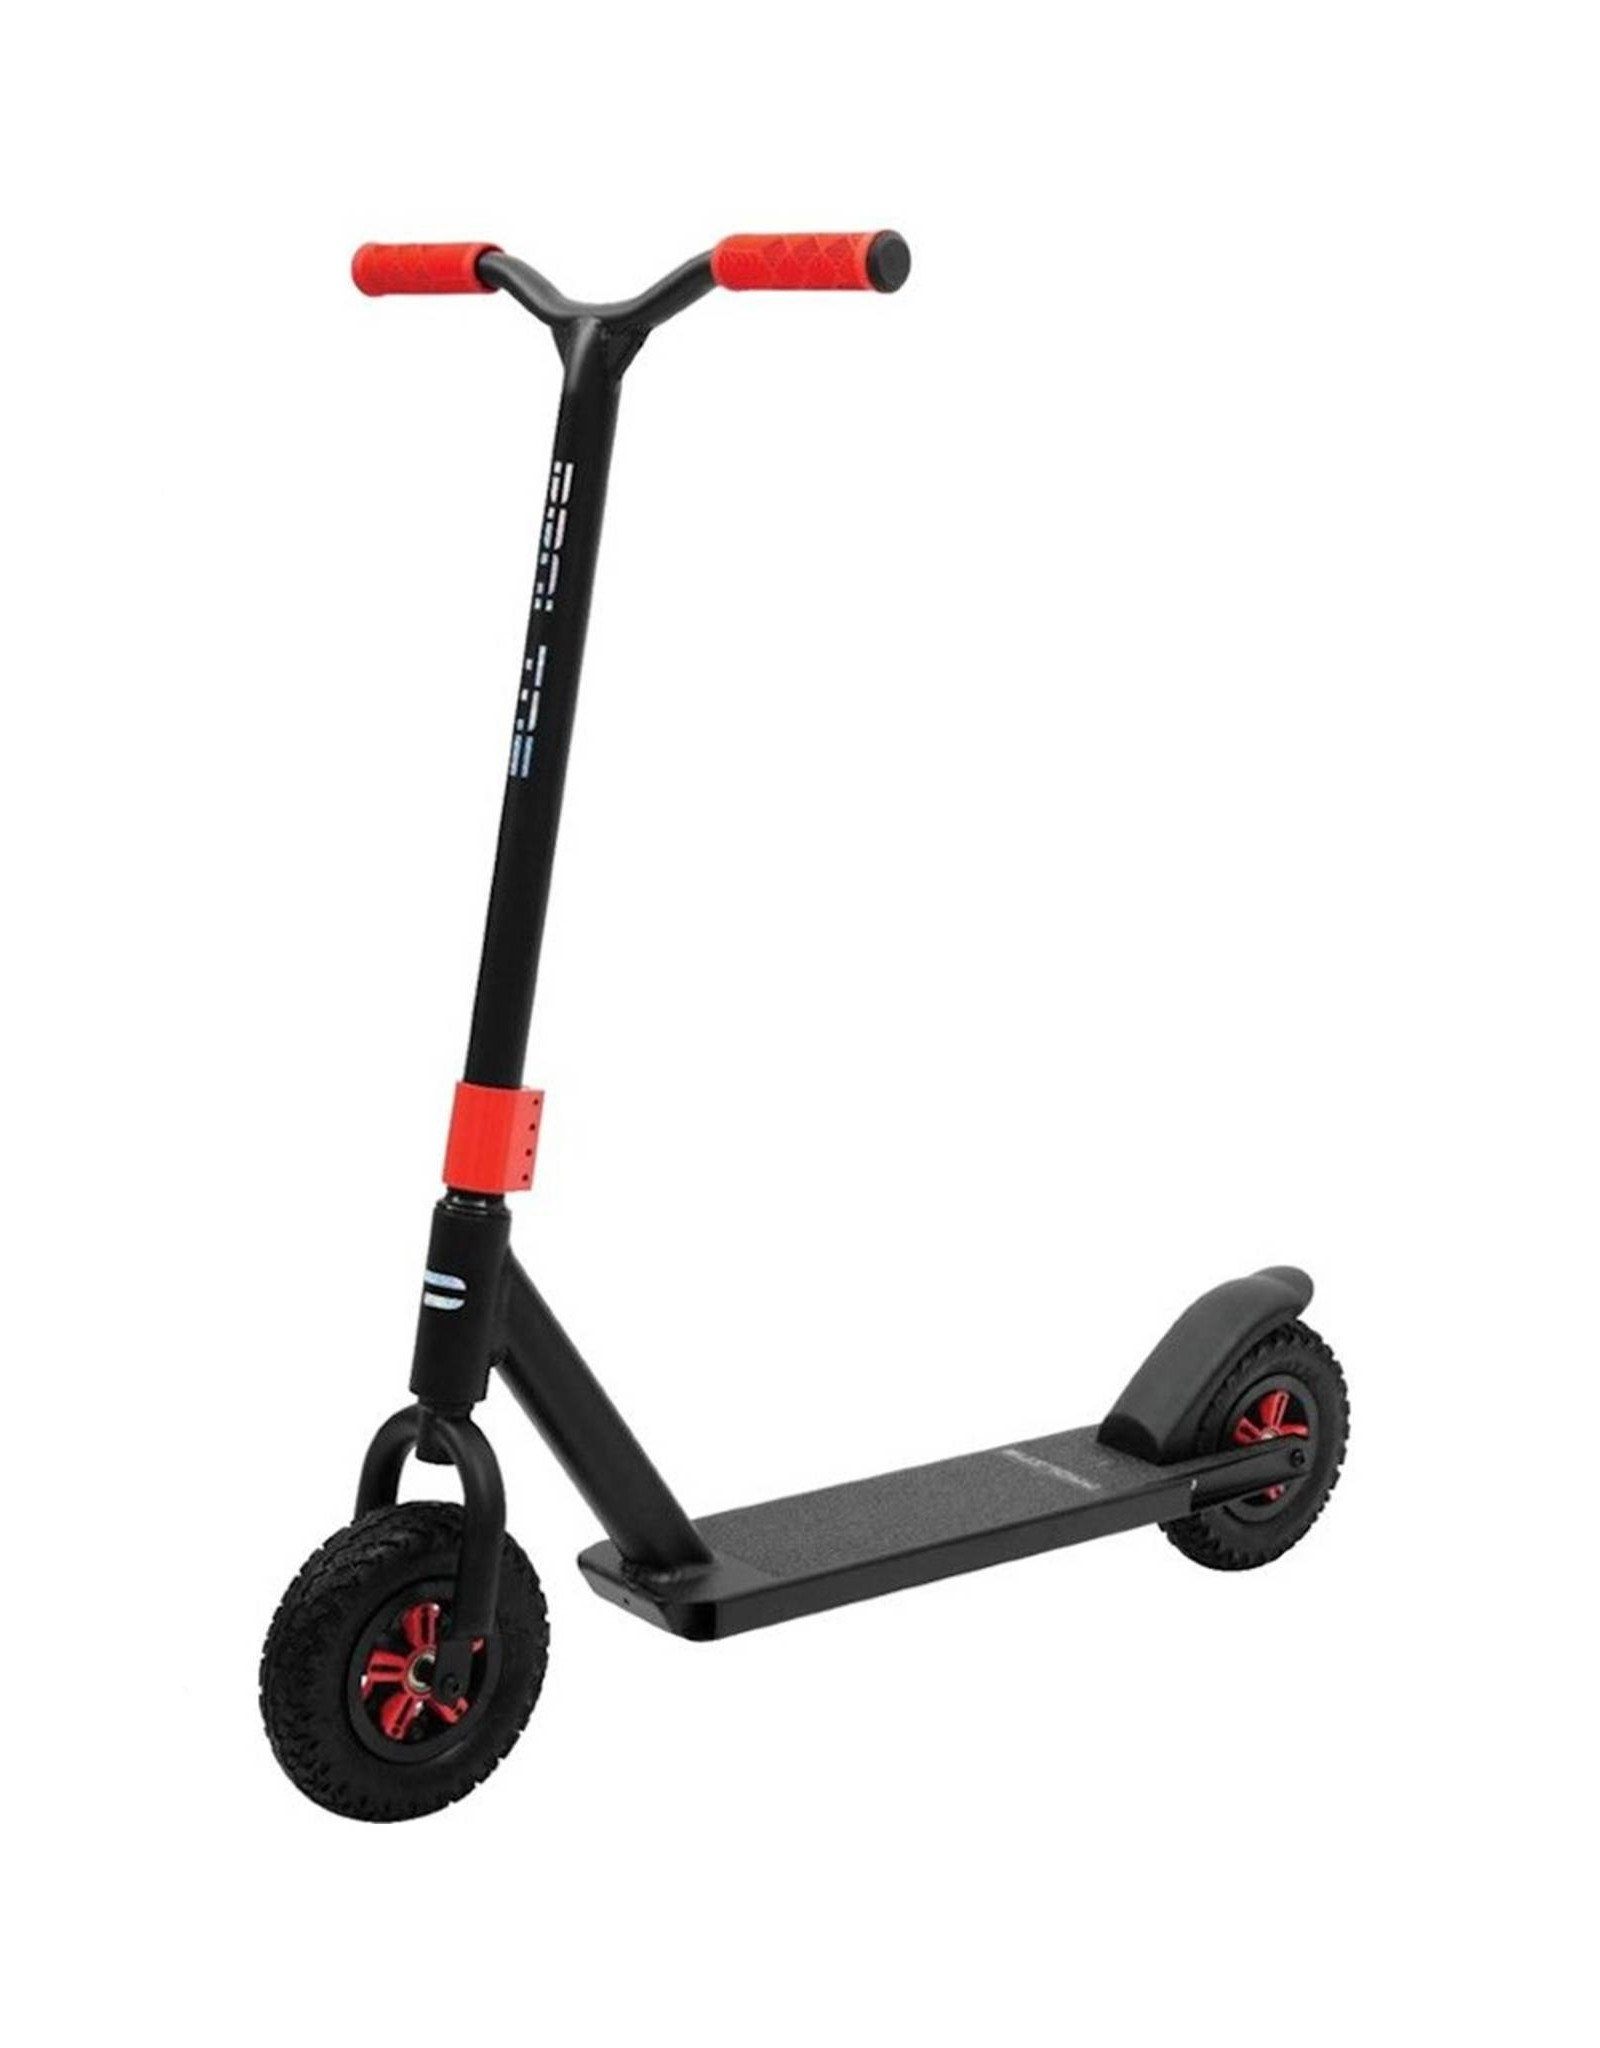 PROLINE Proline Dirt Scooter V2 Black